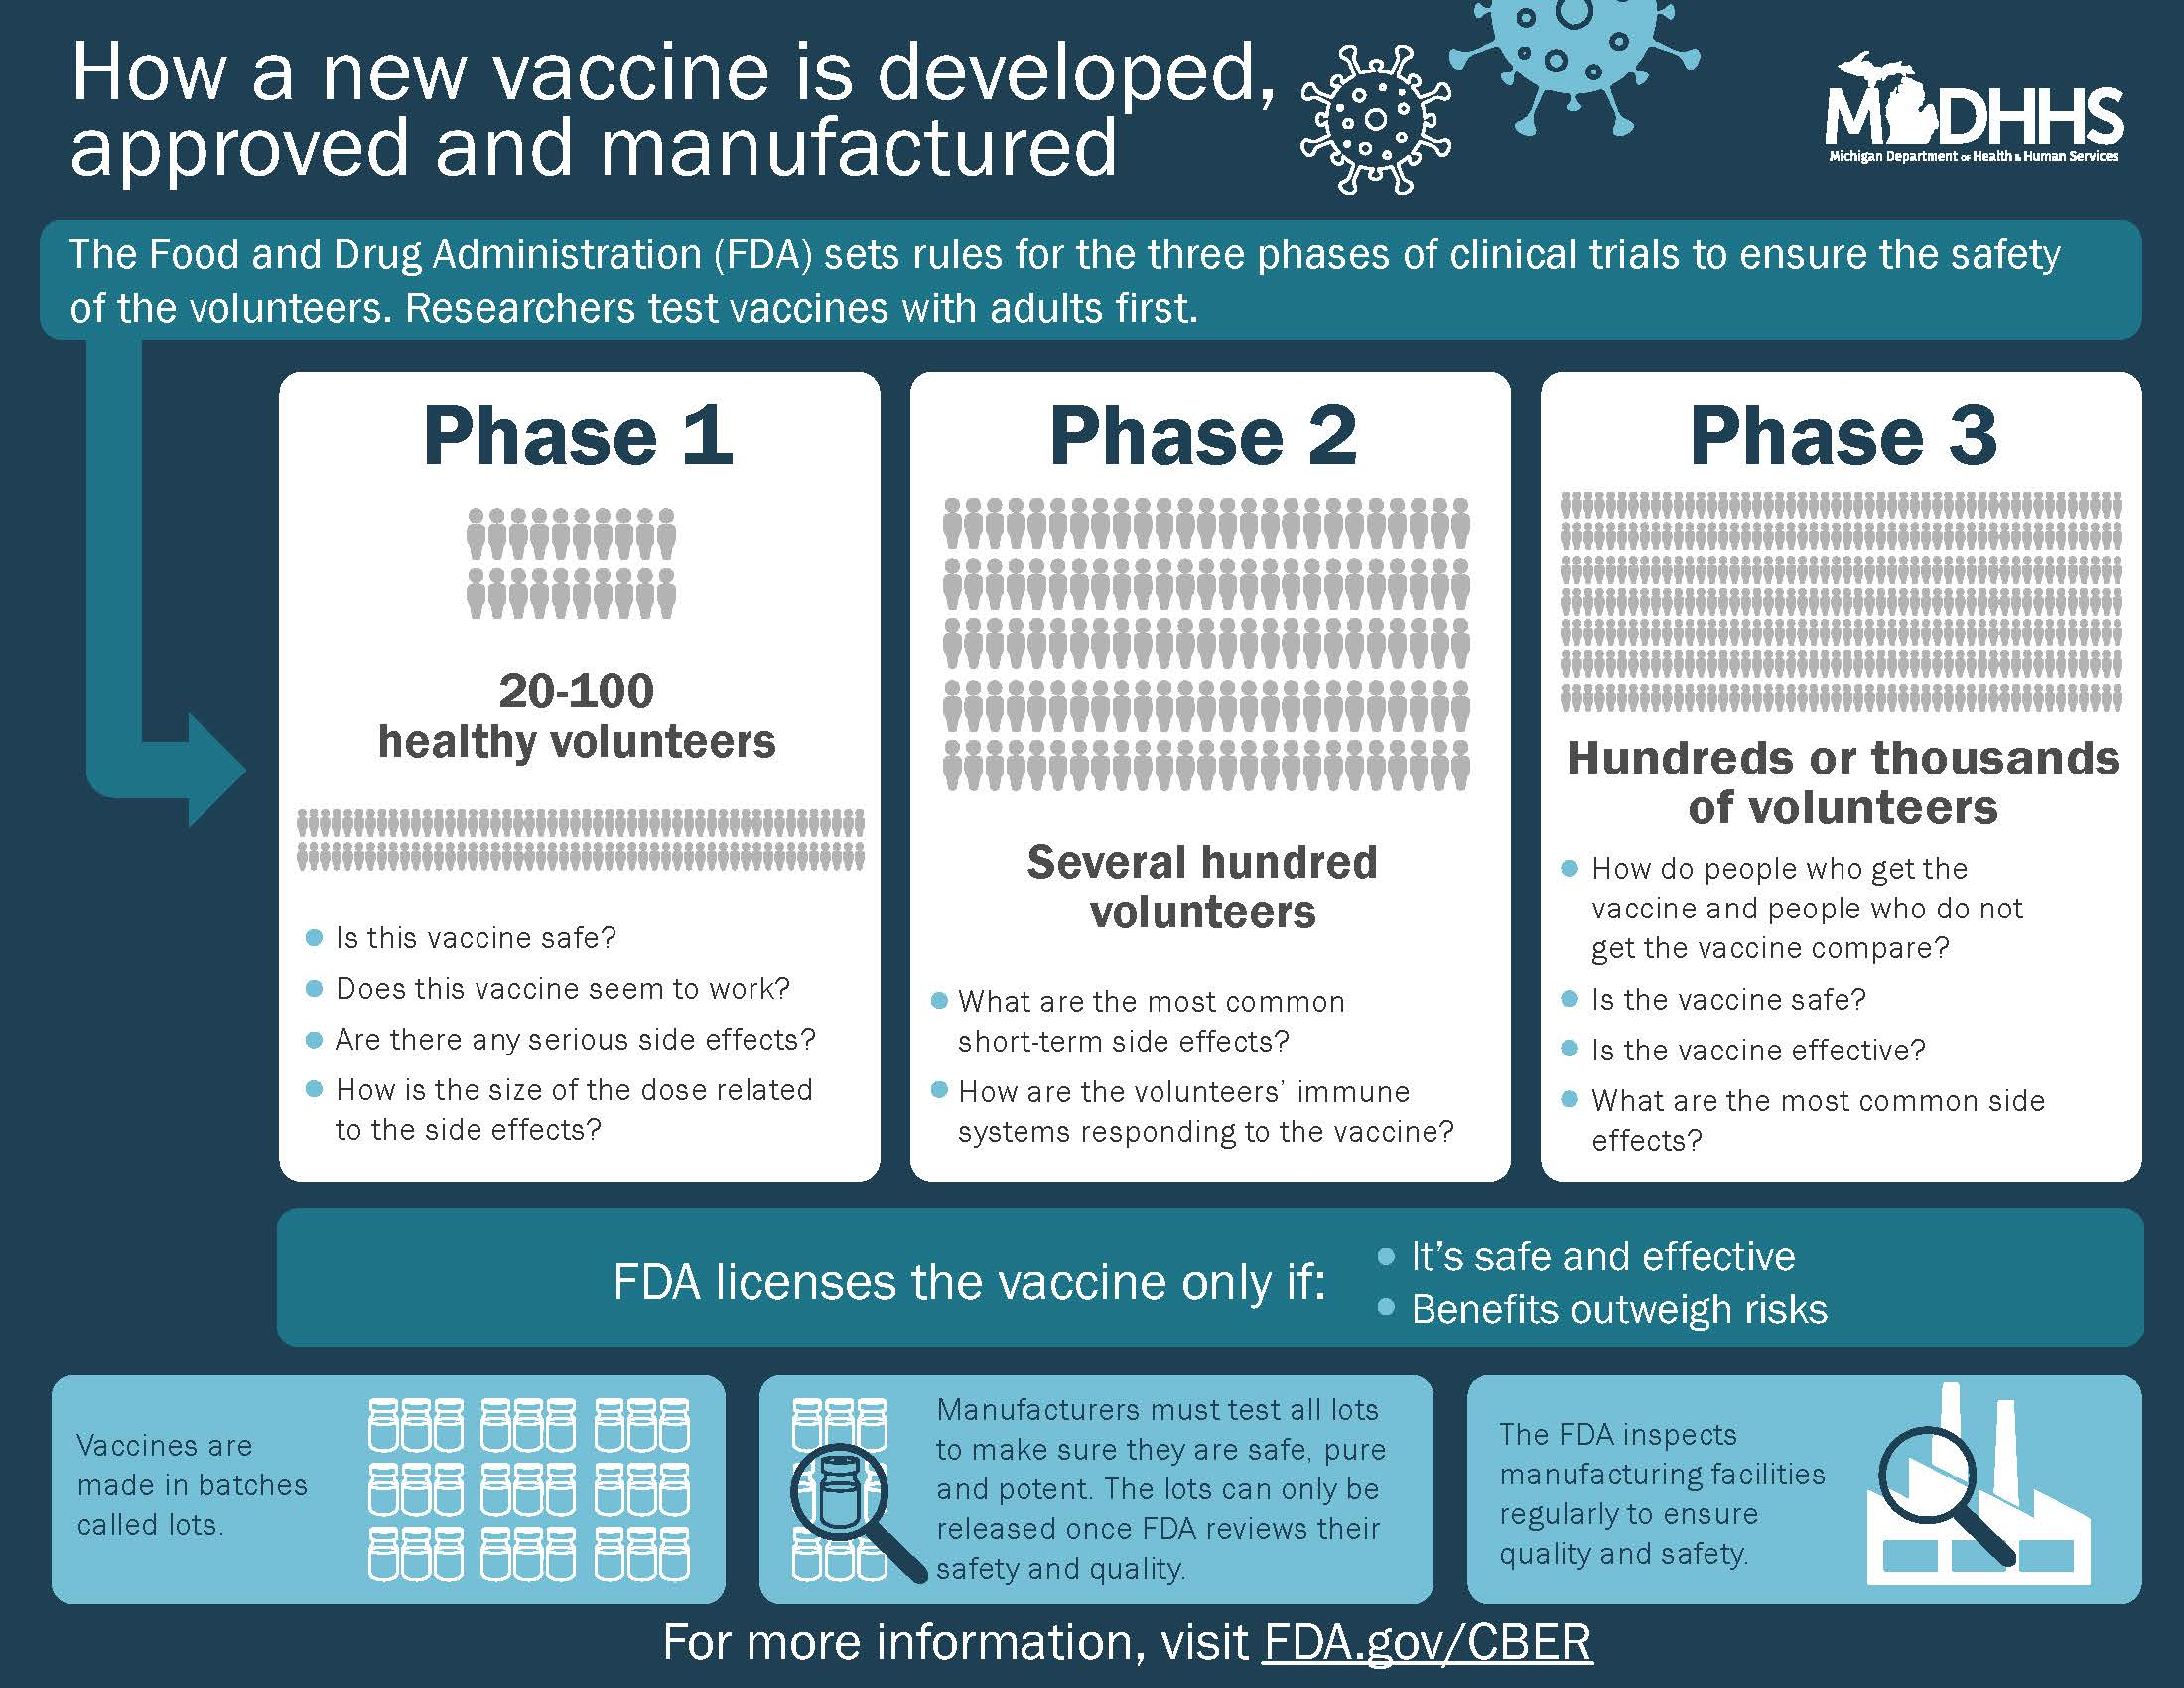 Infographic on developing the COVID-19 vaccine